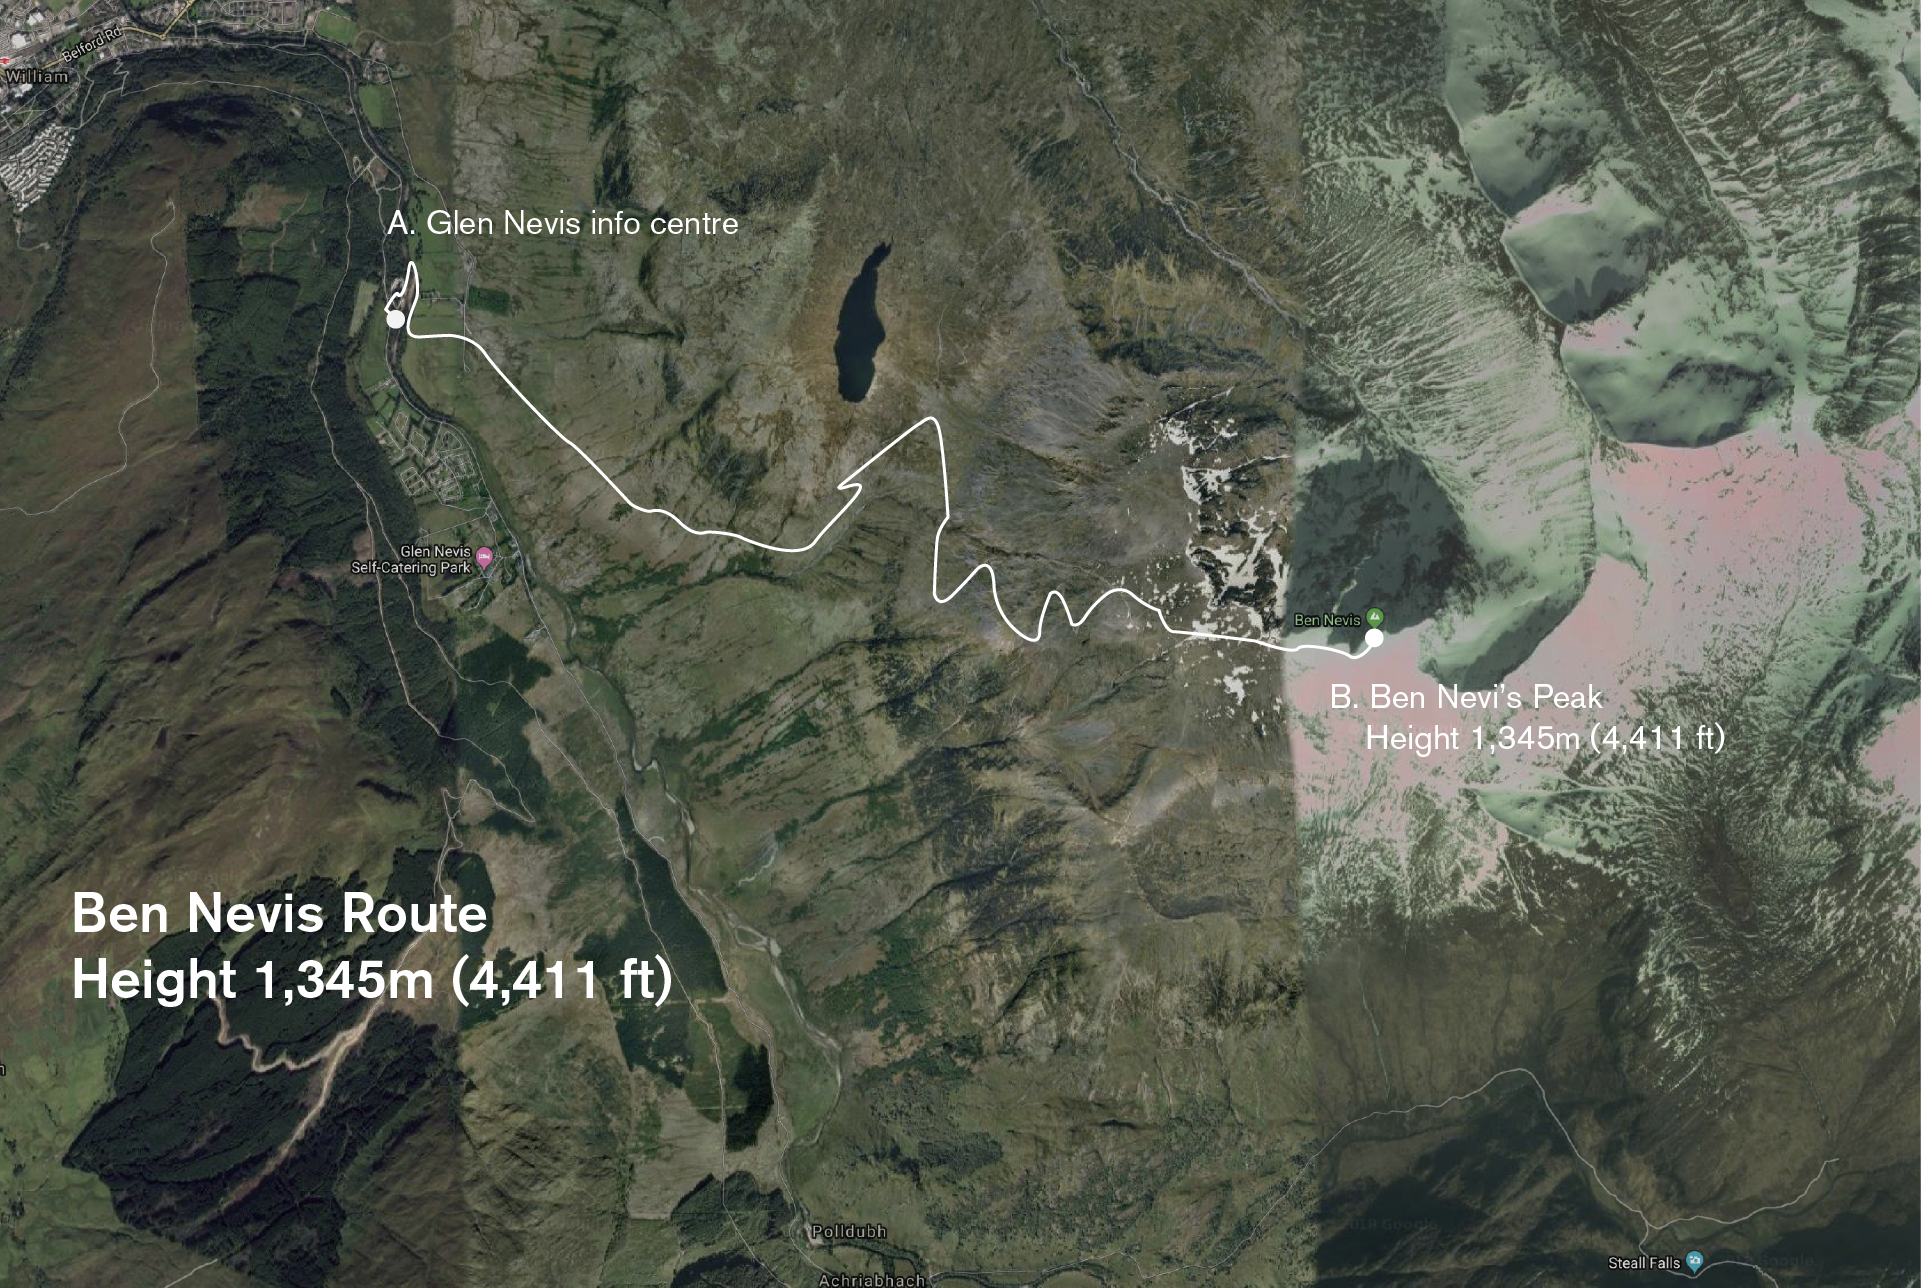 The route map of the climb.